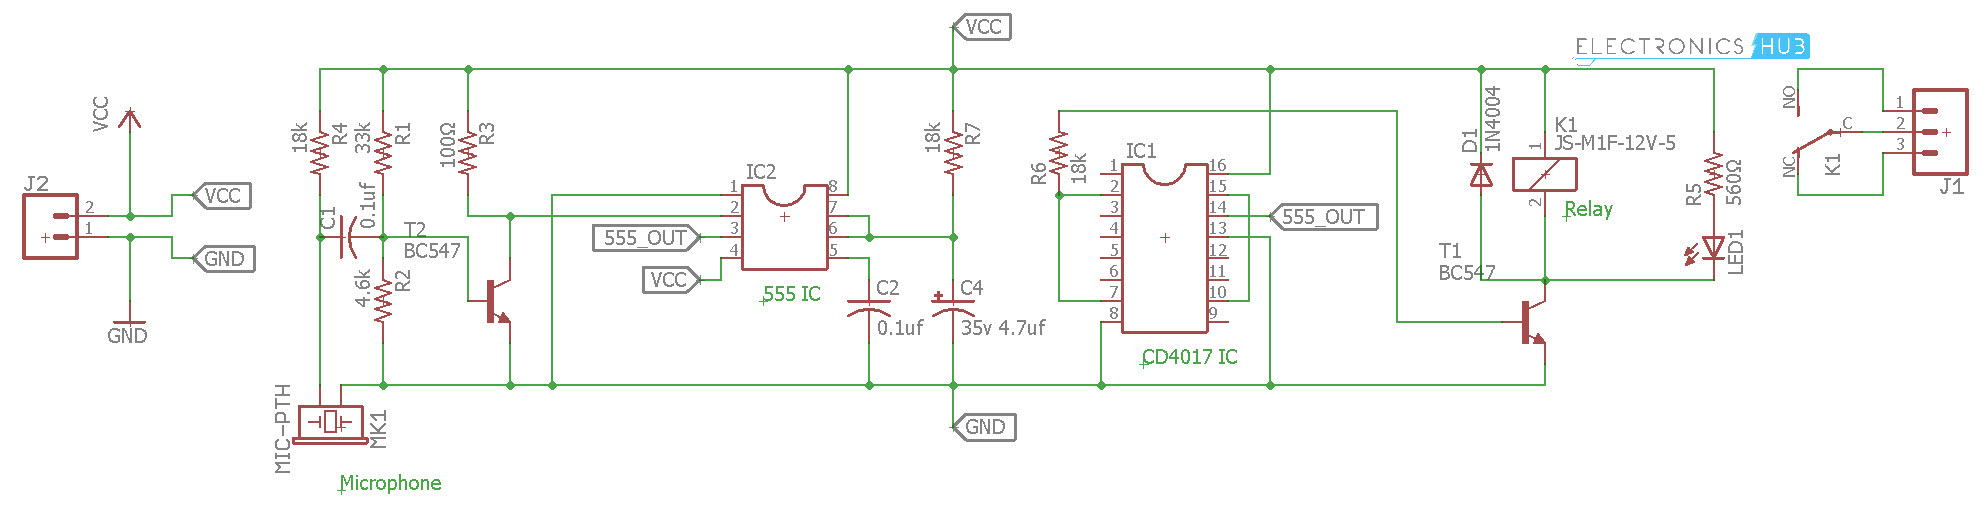 Clap Switch Circuit For Devices Working And Applications Pwm Led Dimmer Using Ne555 Block Diagrams 555 4017 Diagram